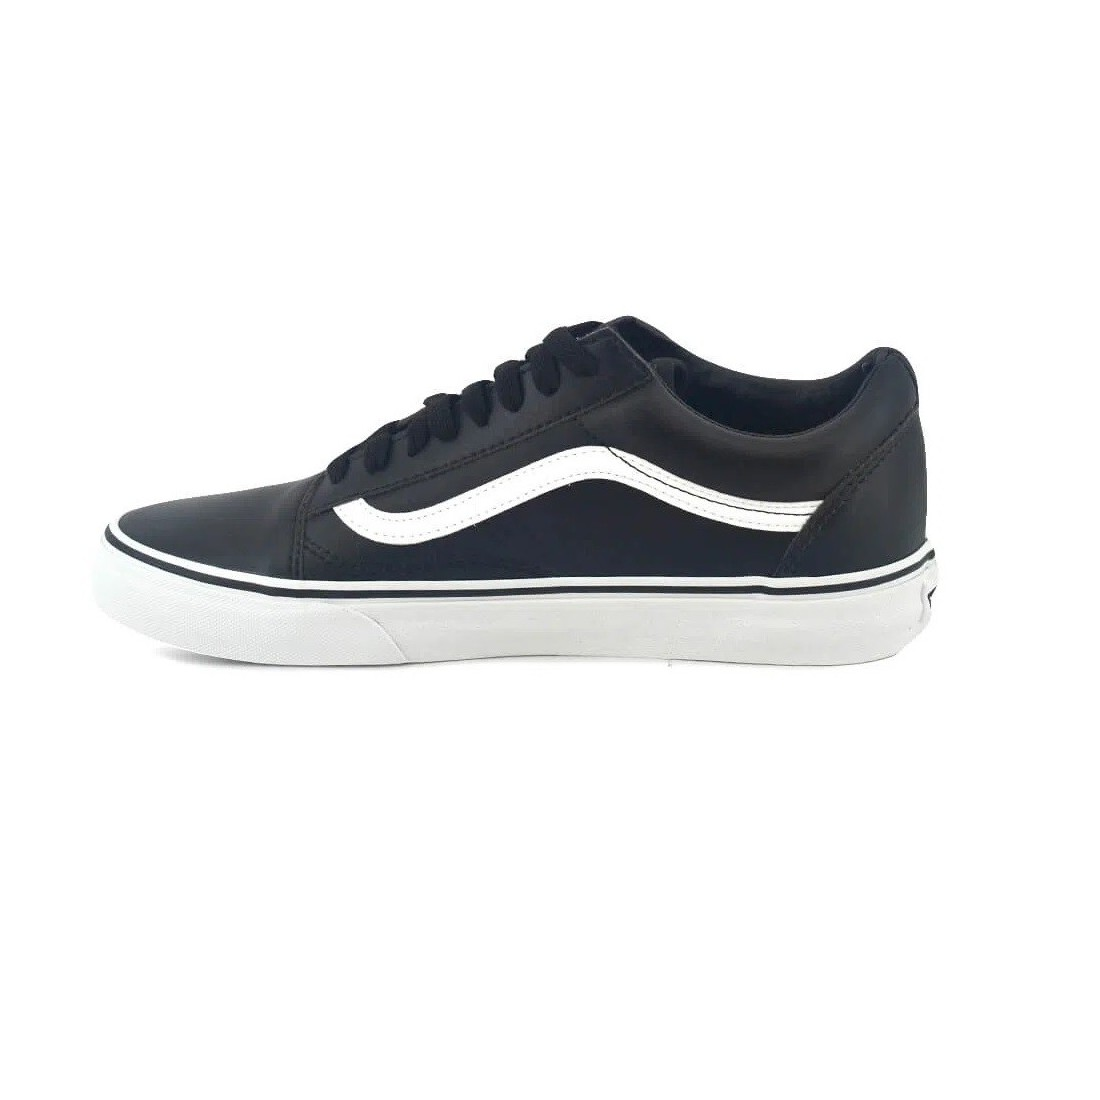 Zapatillas Vans Old Skool Leather - Lifestyle Hombre